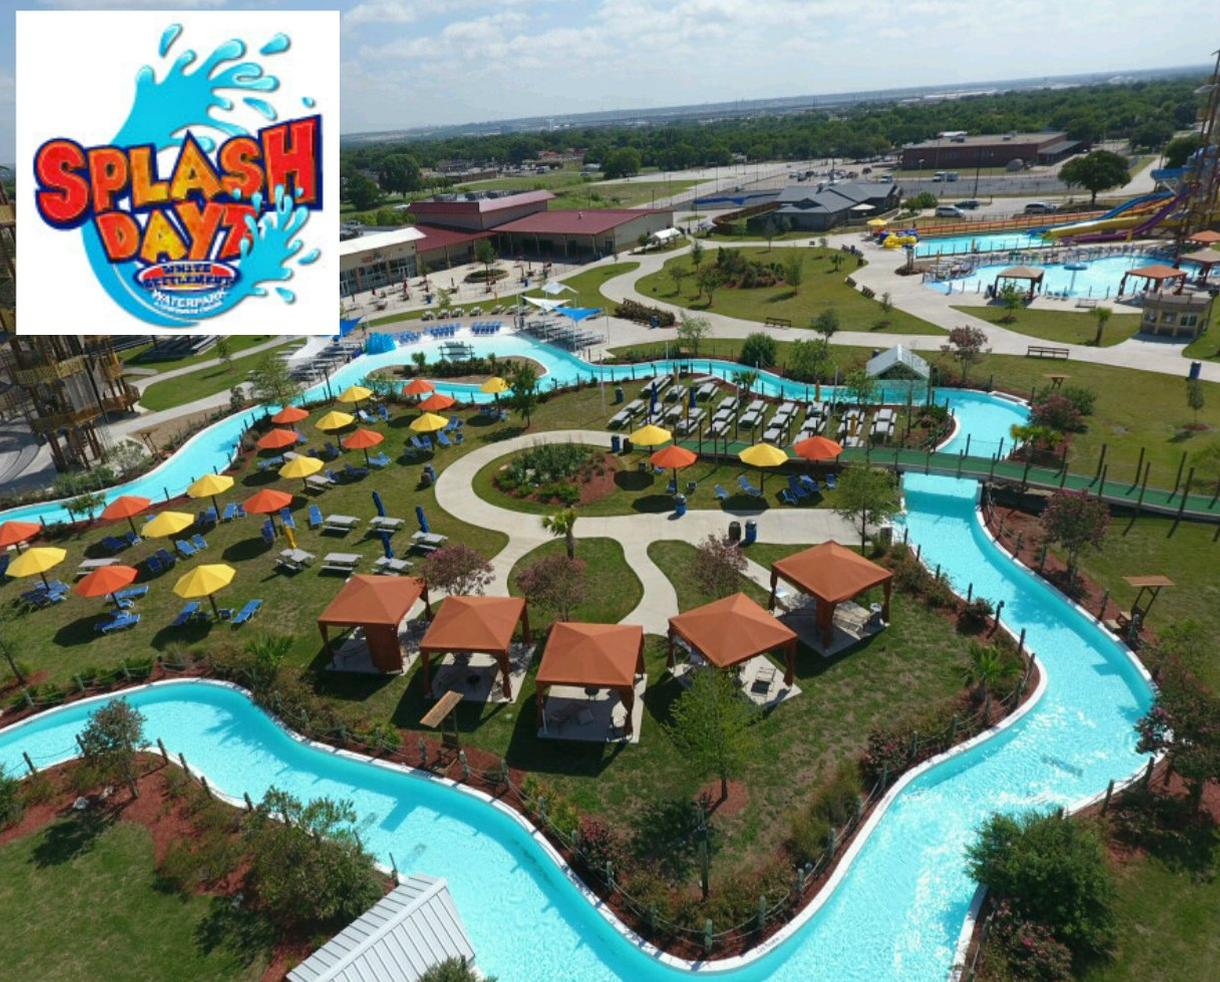 Deal: Splash Dayz Water Park Day or Season Pass | CertifiKID